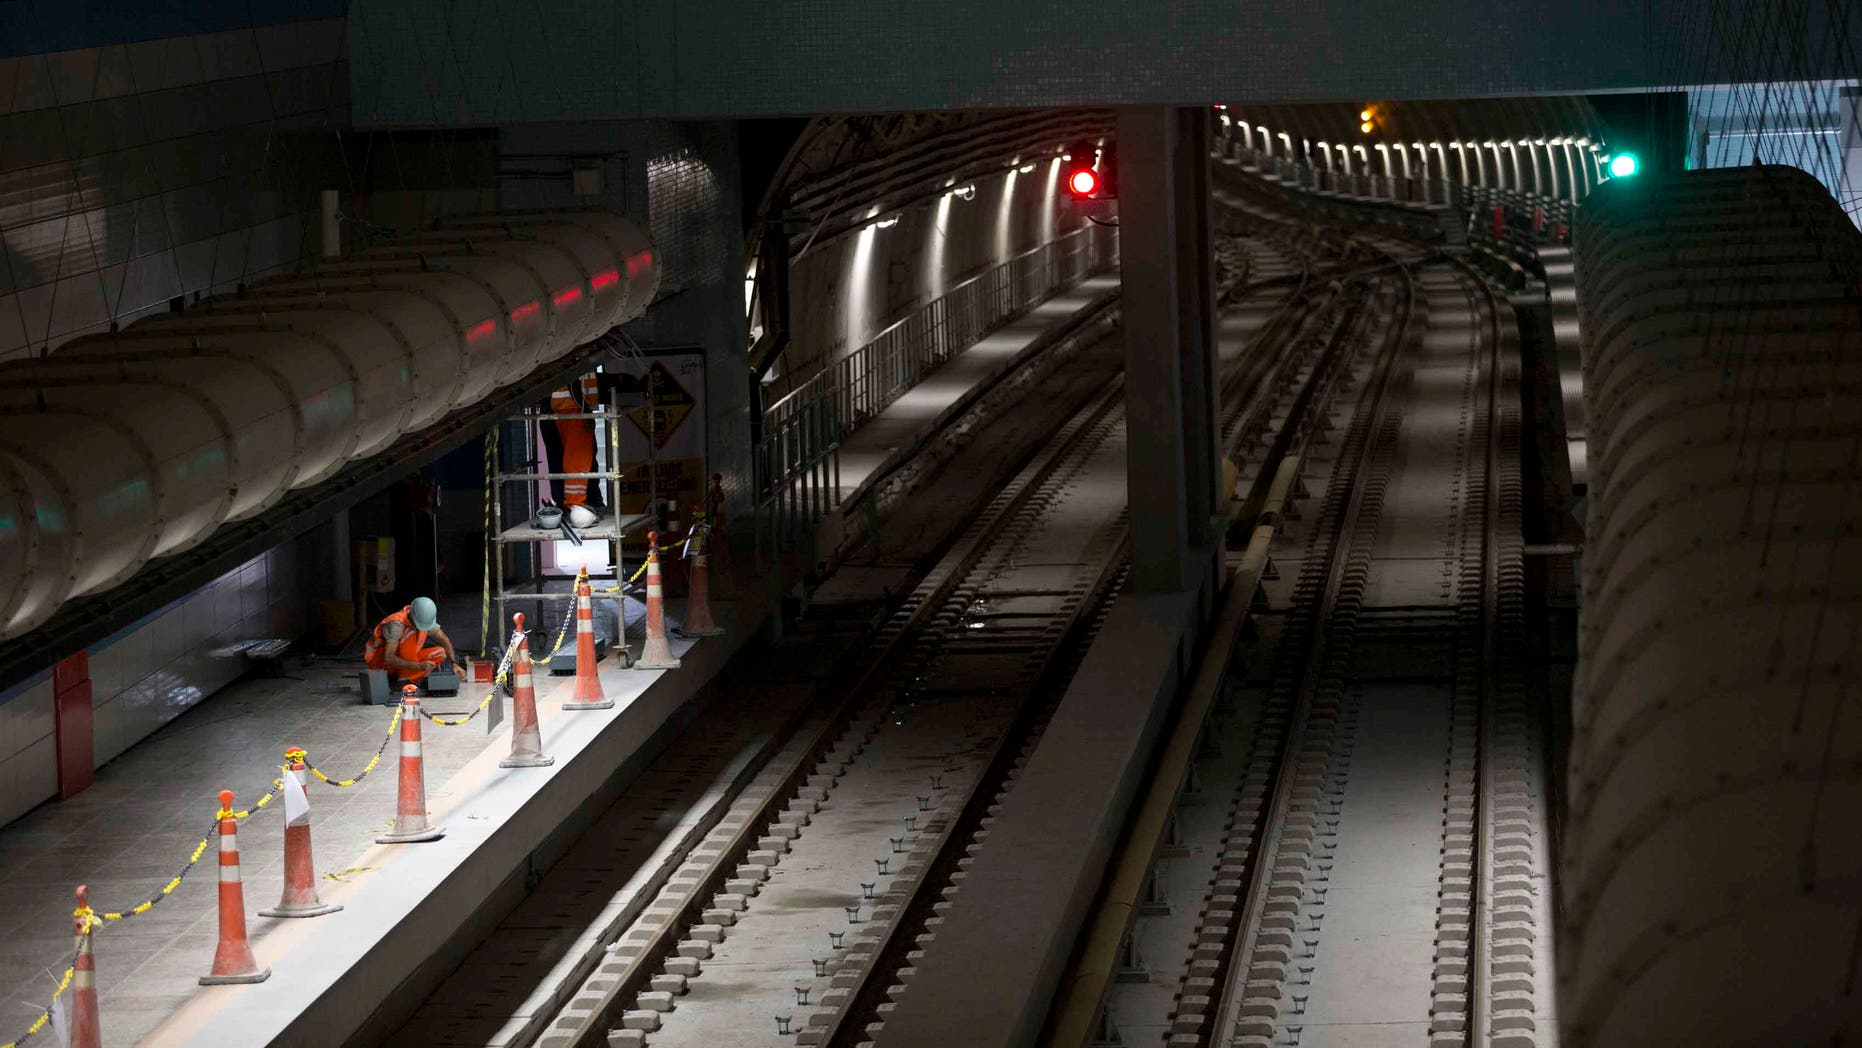 Odebrecht personnel work on the Line 4 of the subway that is under construction in Rio de Janeiro, Brazil.